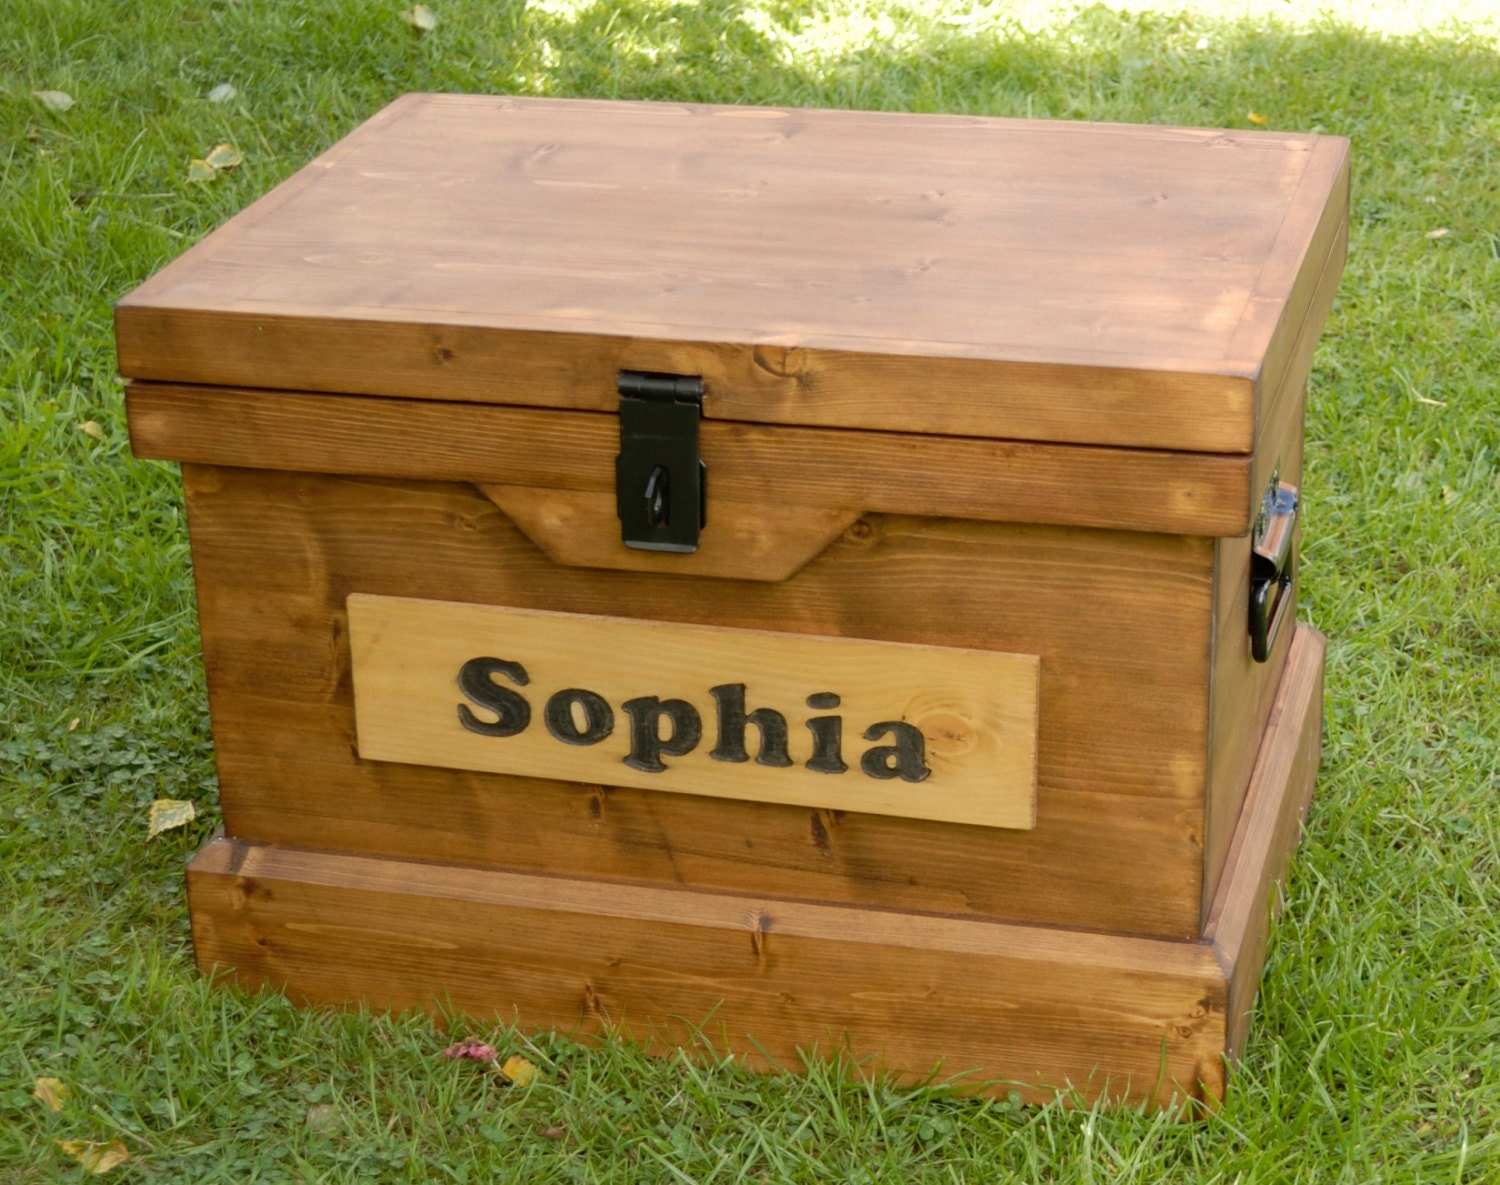 Wood Toy Boxes Or Chests ~ Solid wooden toy box childrens name storage chest seat